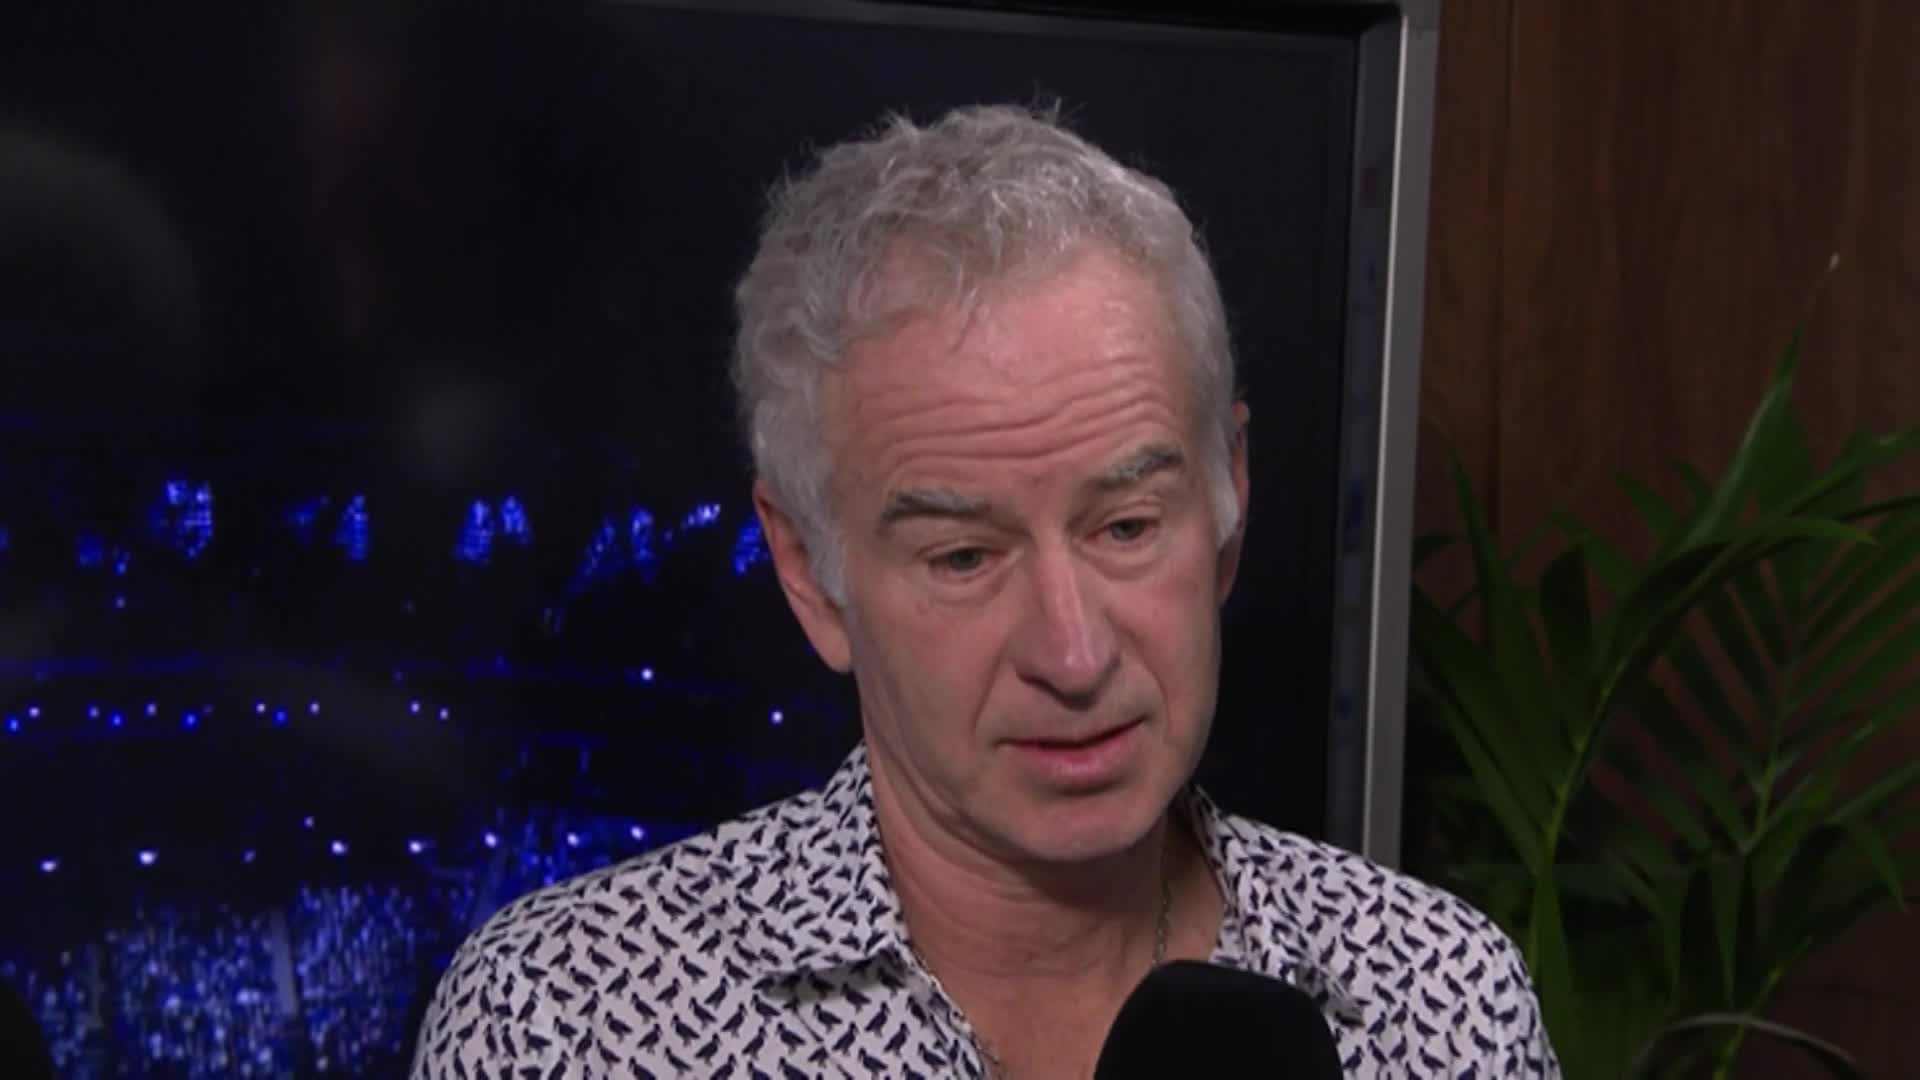 John McEnroe on Colbert!  Him and his BIG MOUTH!